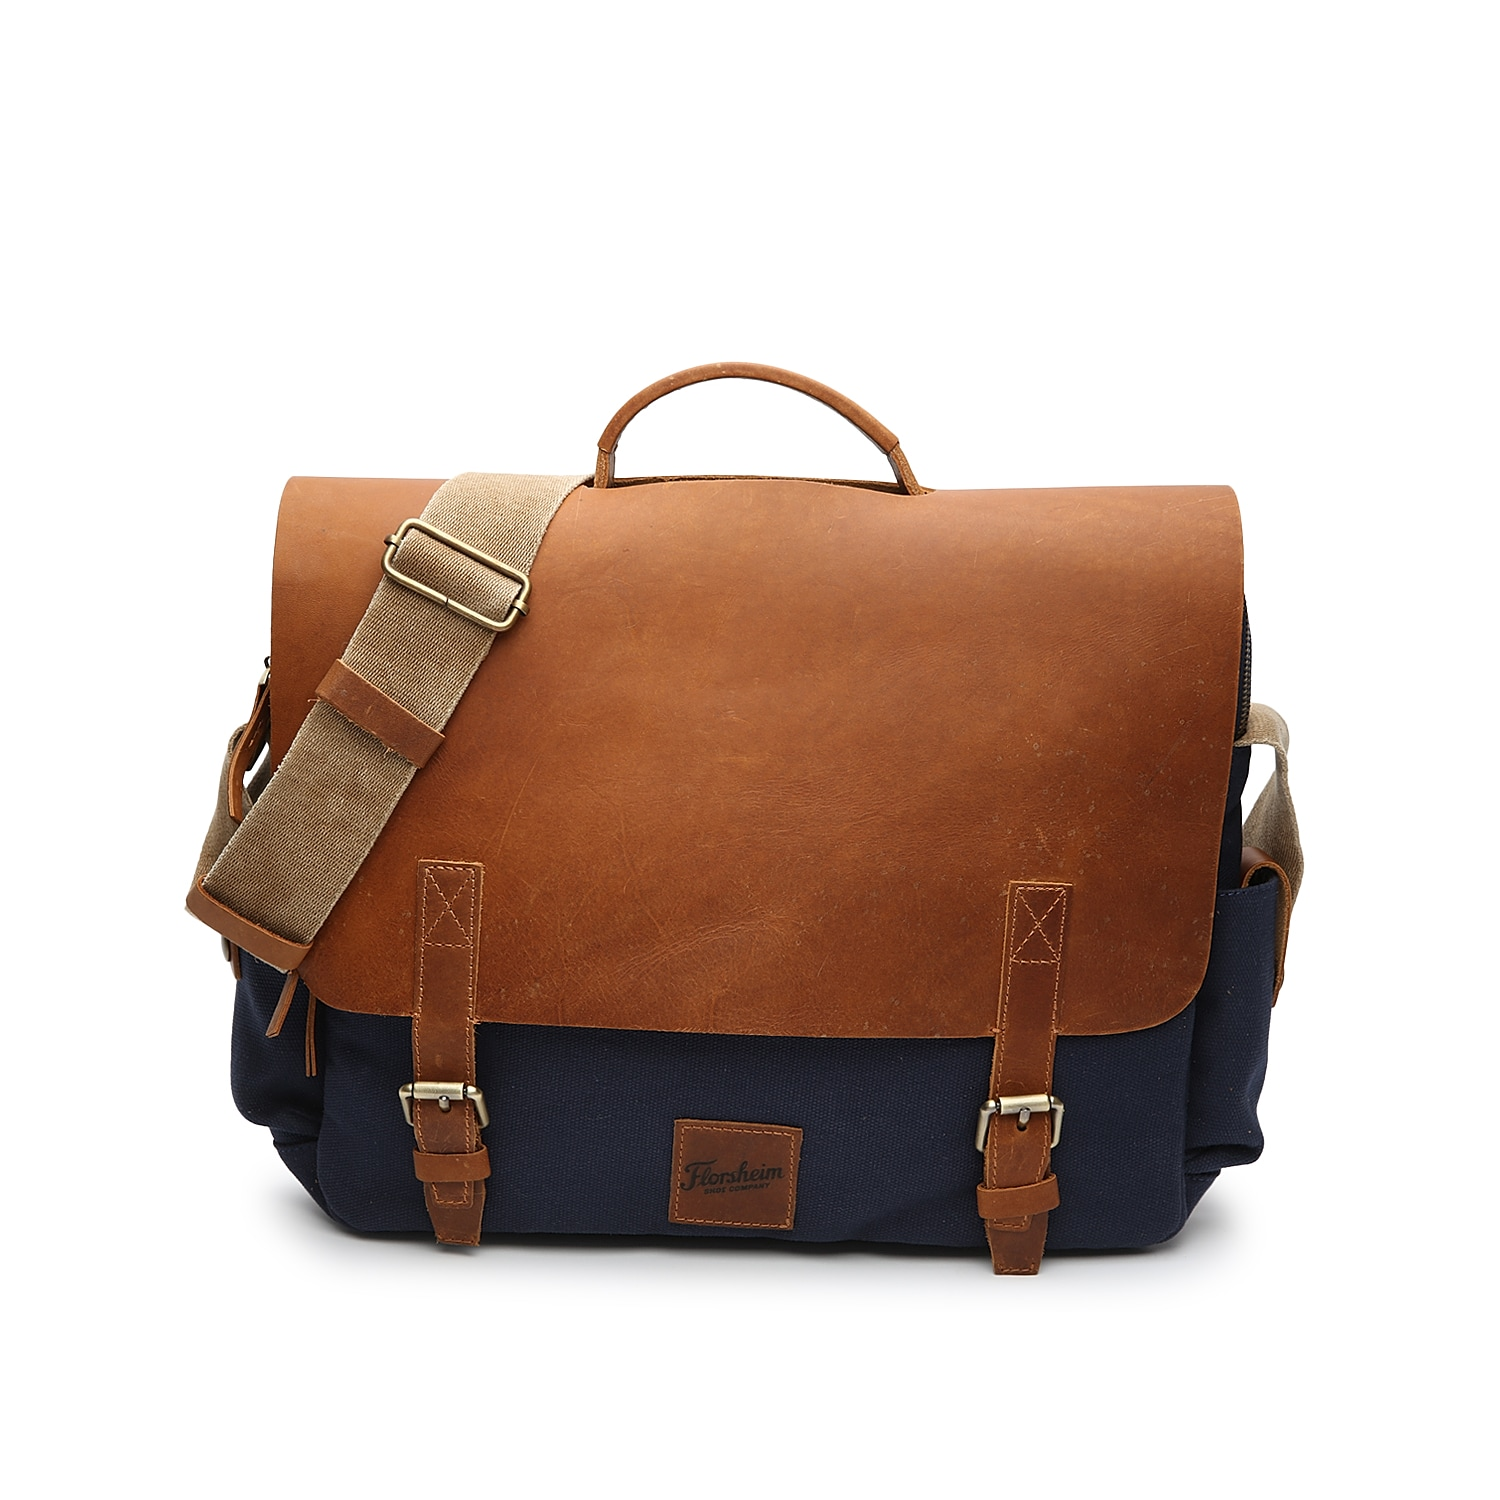 Look your best as you travel back and forth from the office with the Rodrigo messenger bag from Florsheim. This mixed material bag features a padded laptop sleeve and plenty of pockets to keep you extra organized.